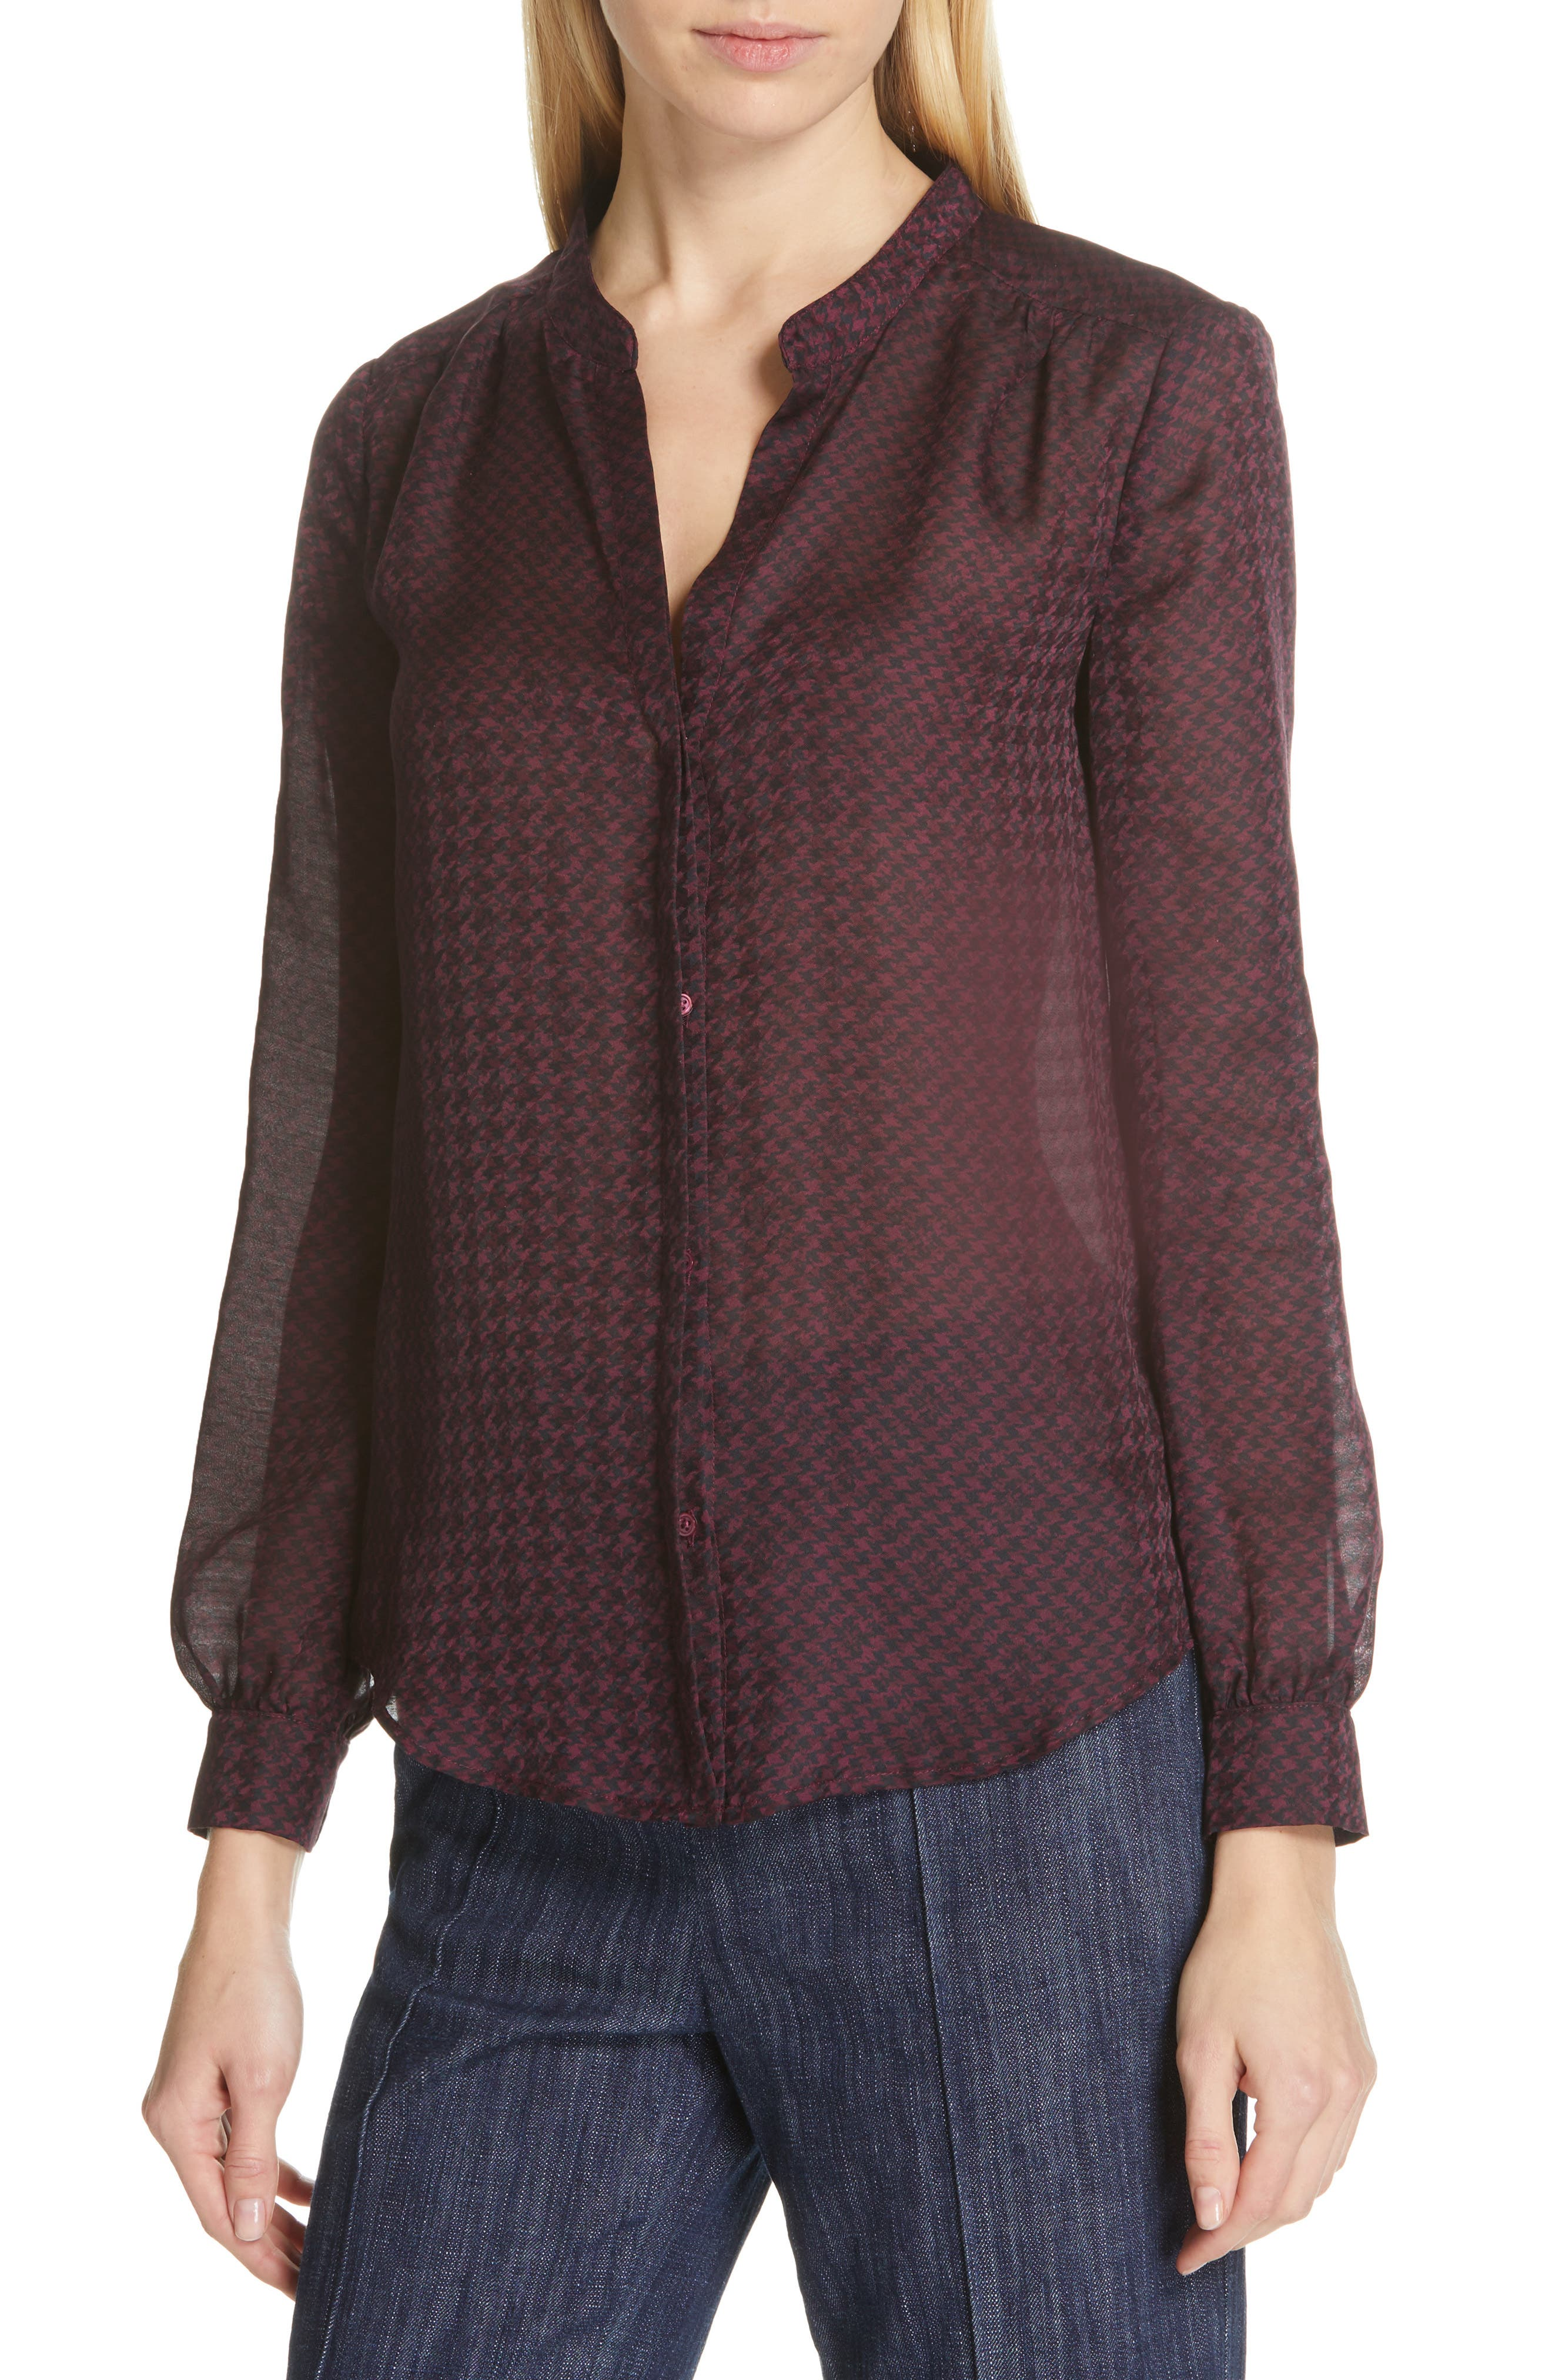 JOIE, Mintee Houndstooth Check Blouse, Alternate thumbnail 4, color, 501